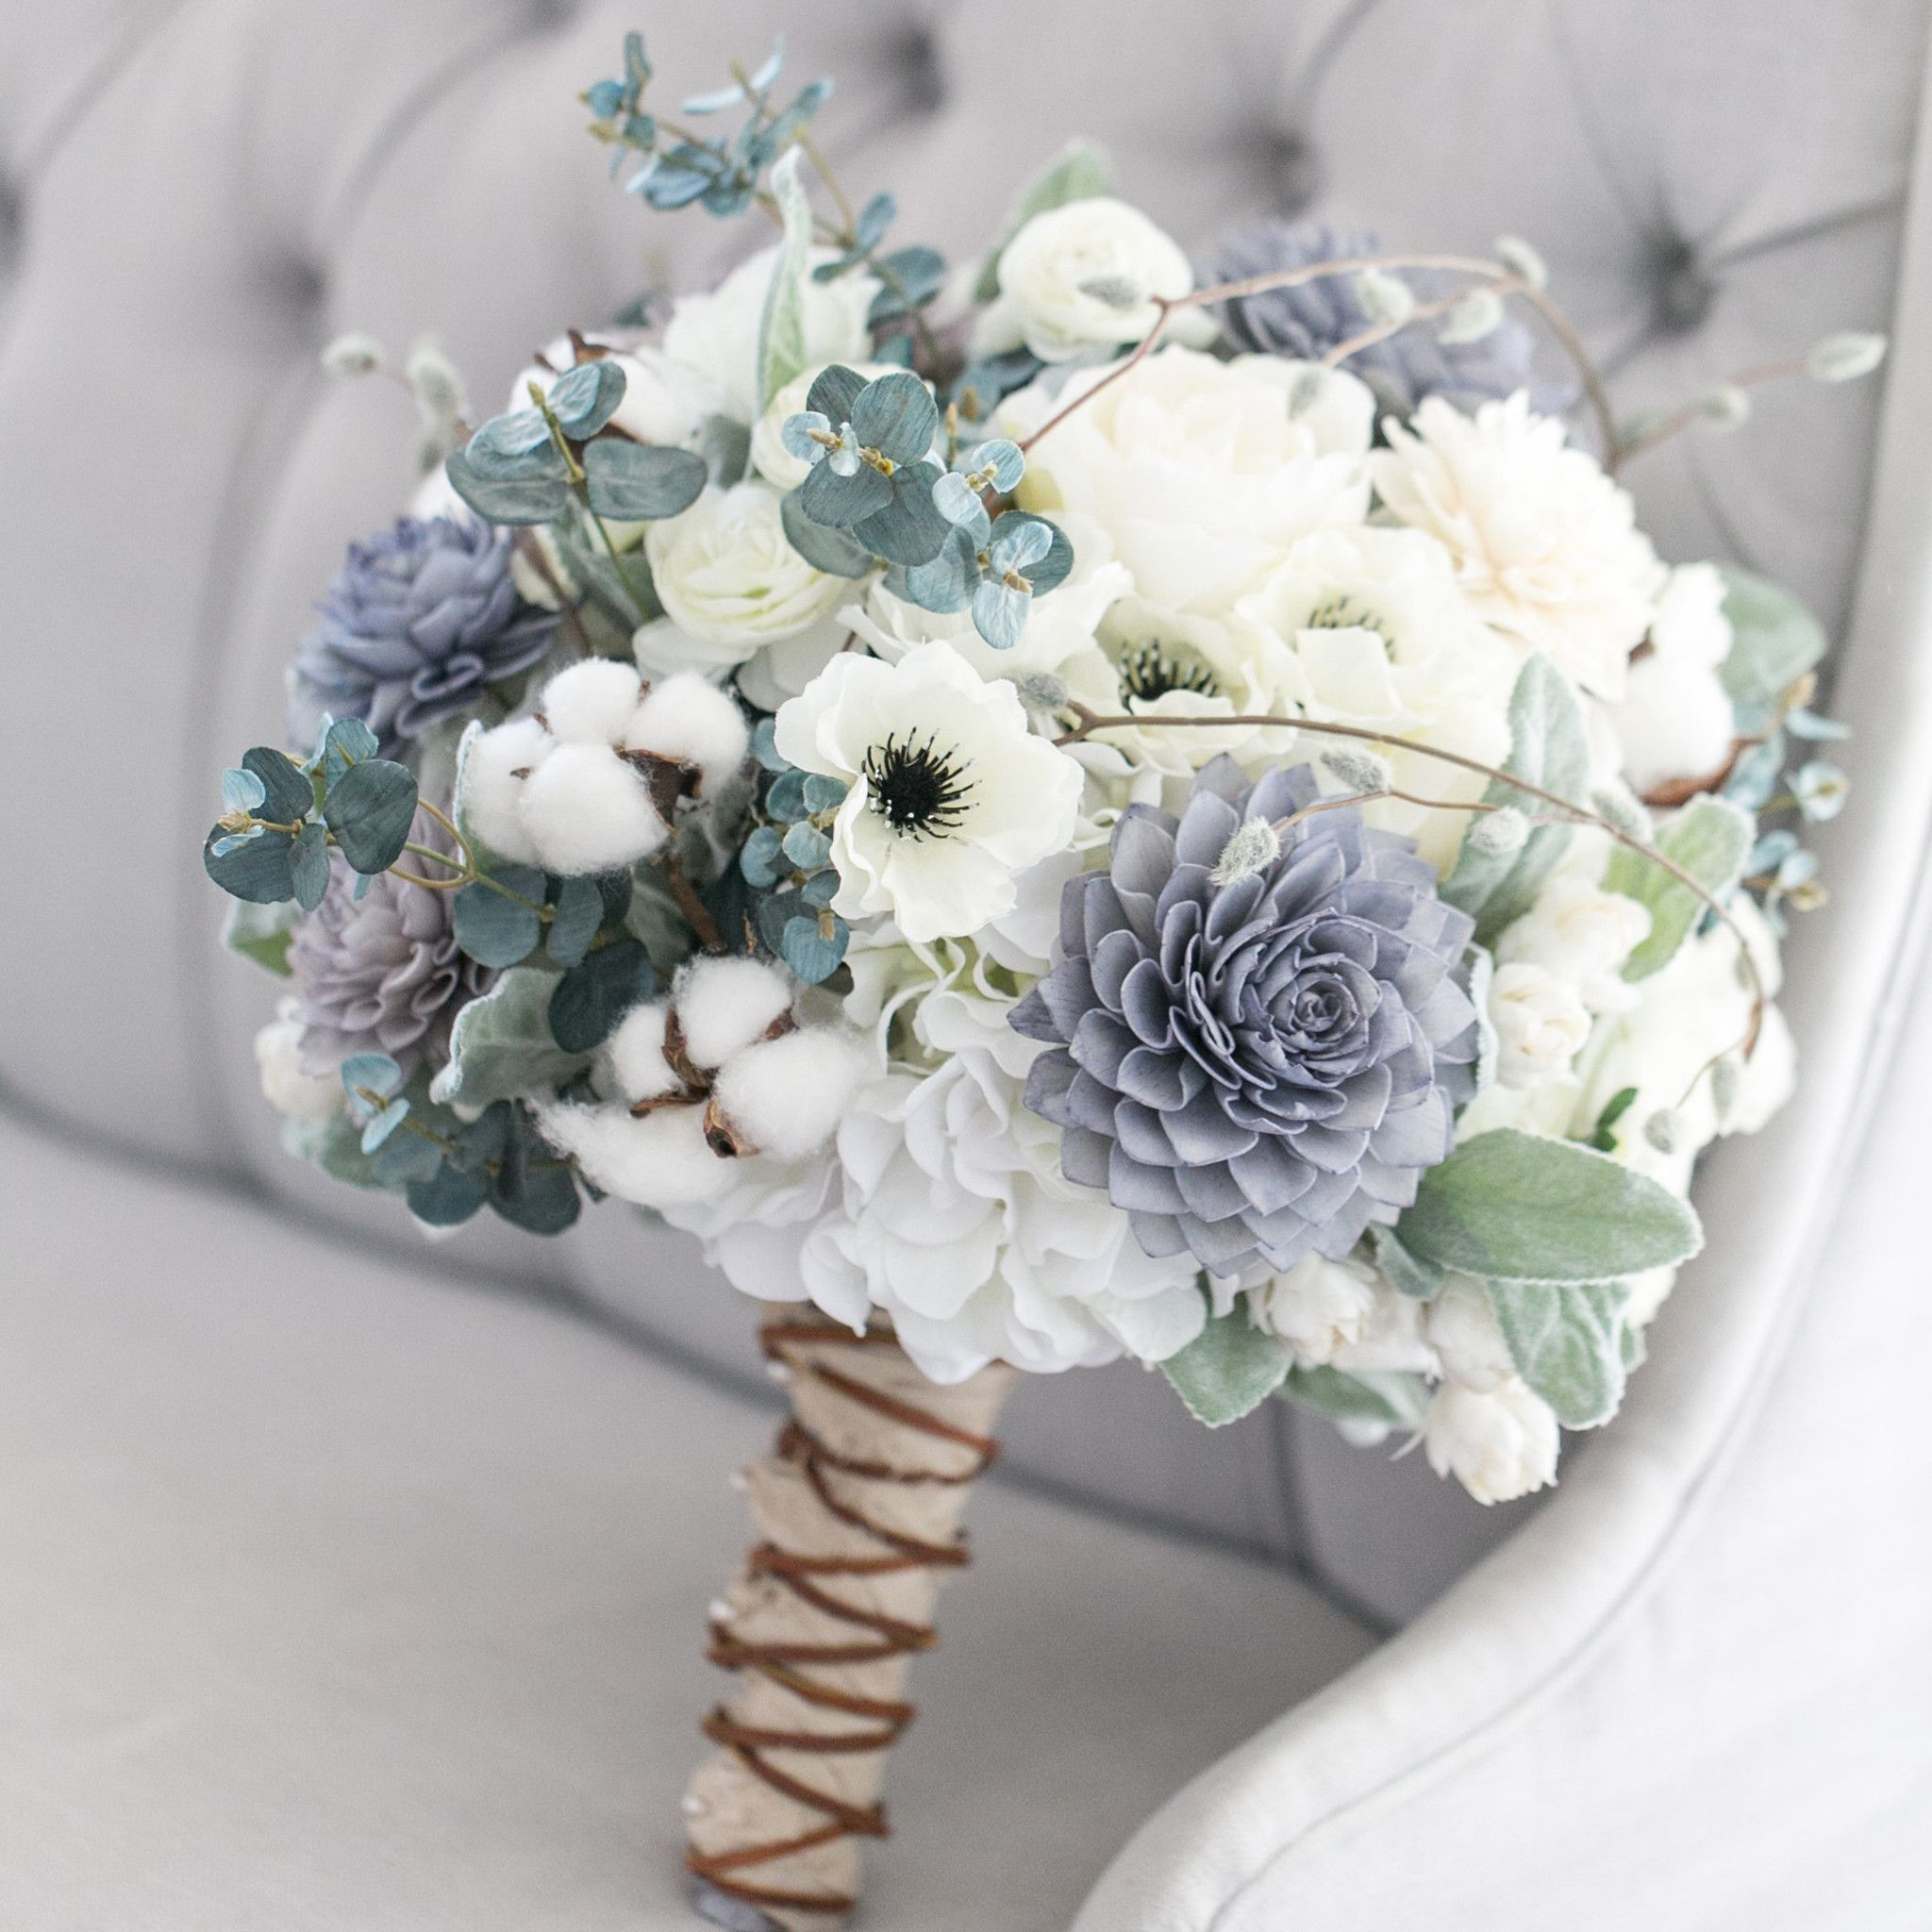 Rustic Romance Wedding Bouquet | Amanda\'s Wedding Ideas ...